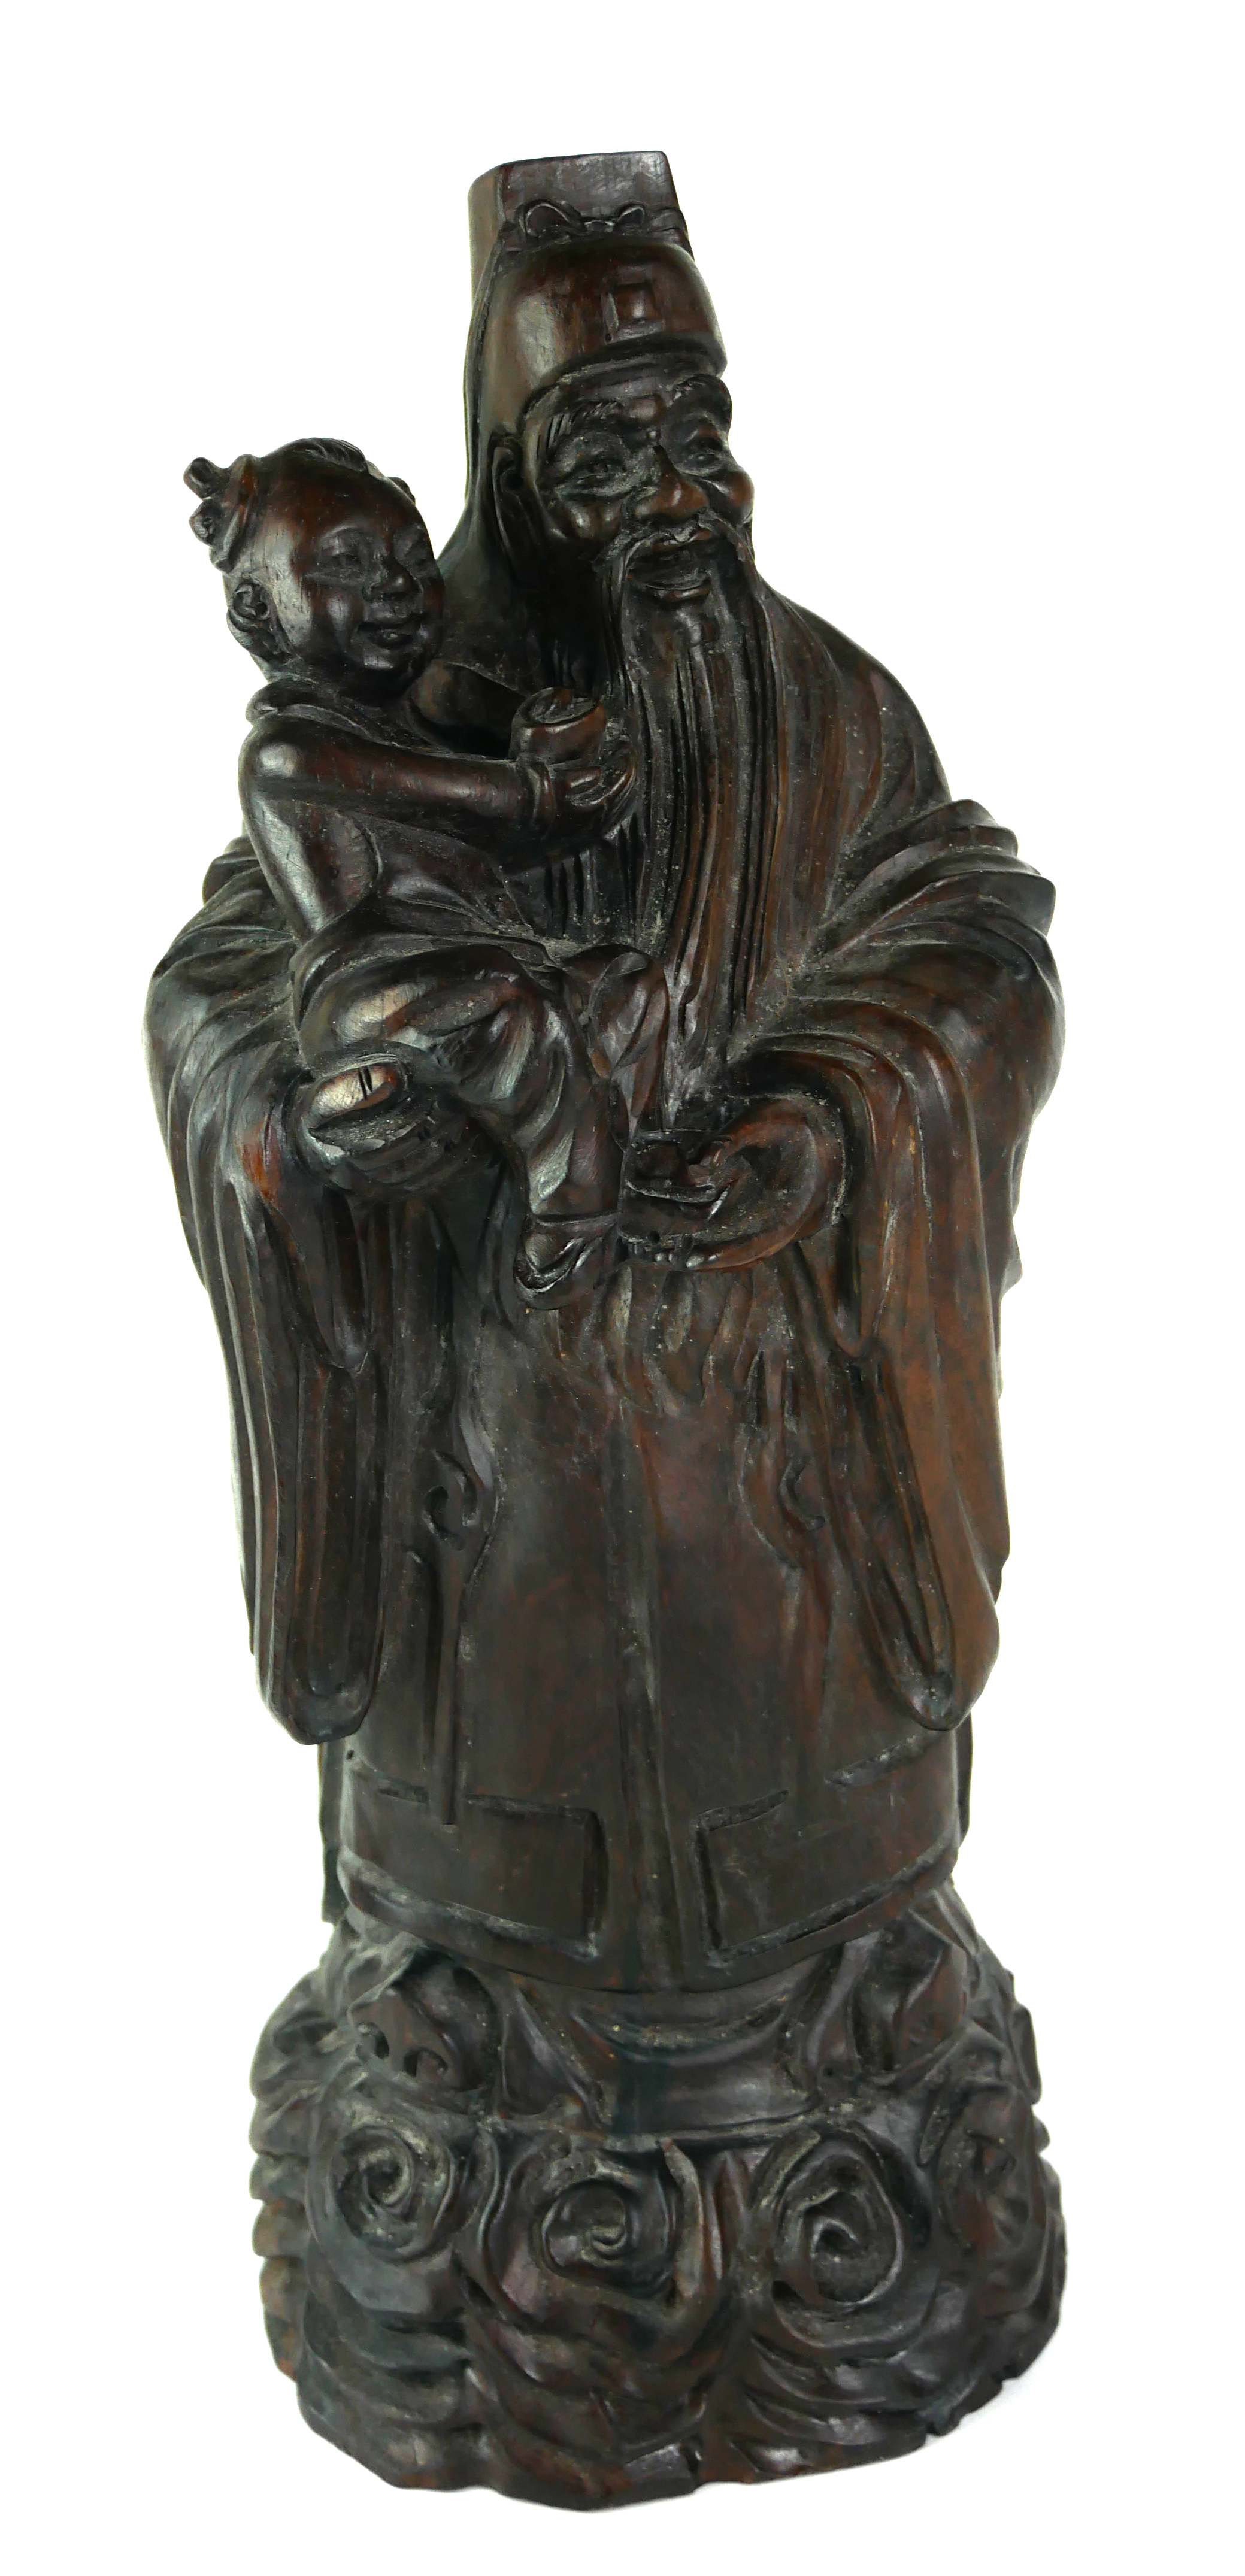 AN EARLY 20TH CENTURY CHINESE ROSEWOOD GROUP CARVING OF IMMORTAL FIGURE HOLDING A CHILD Raised on